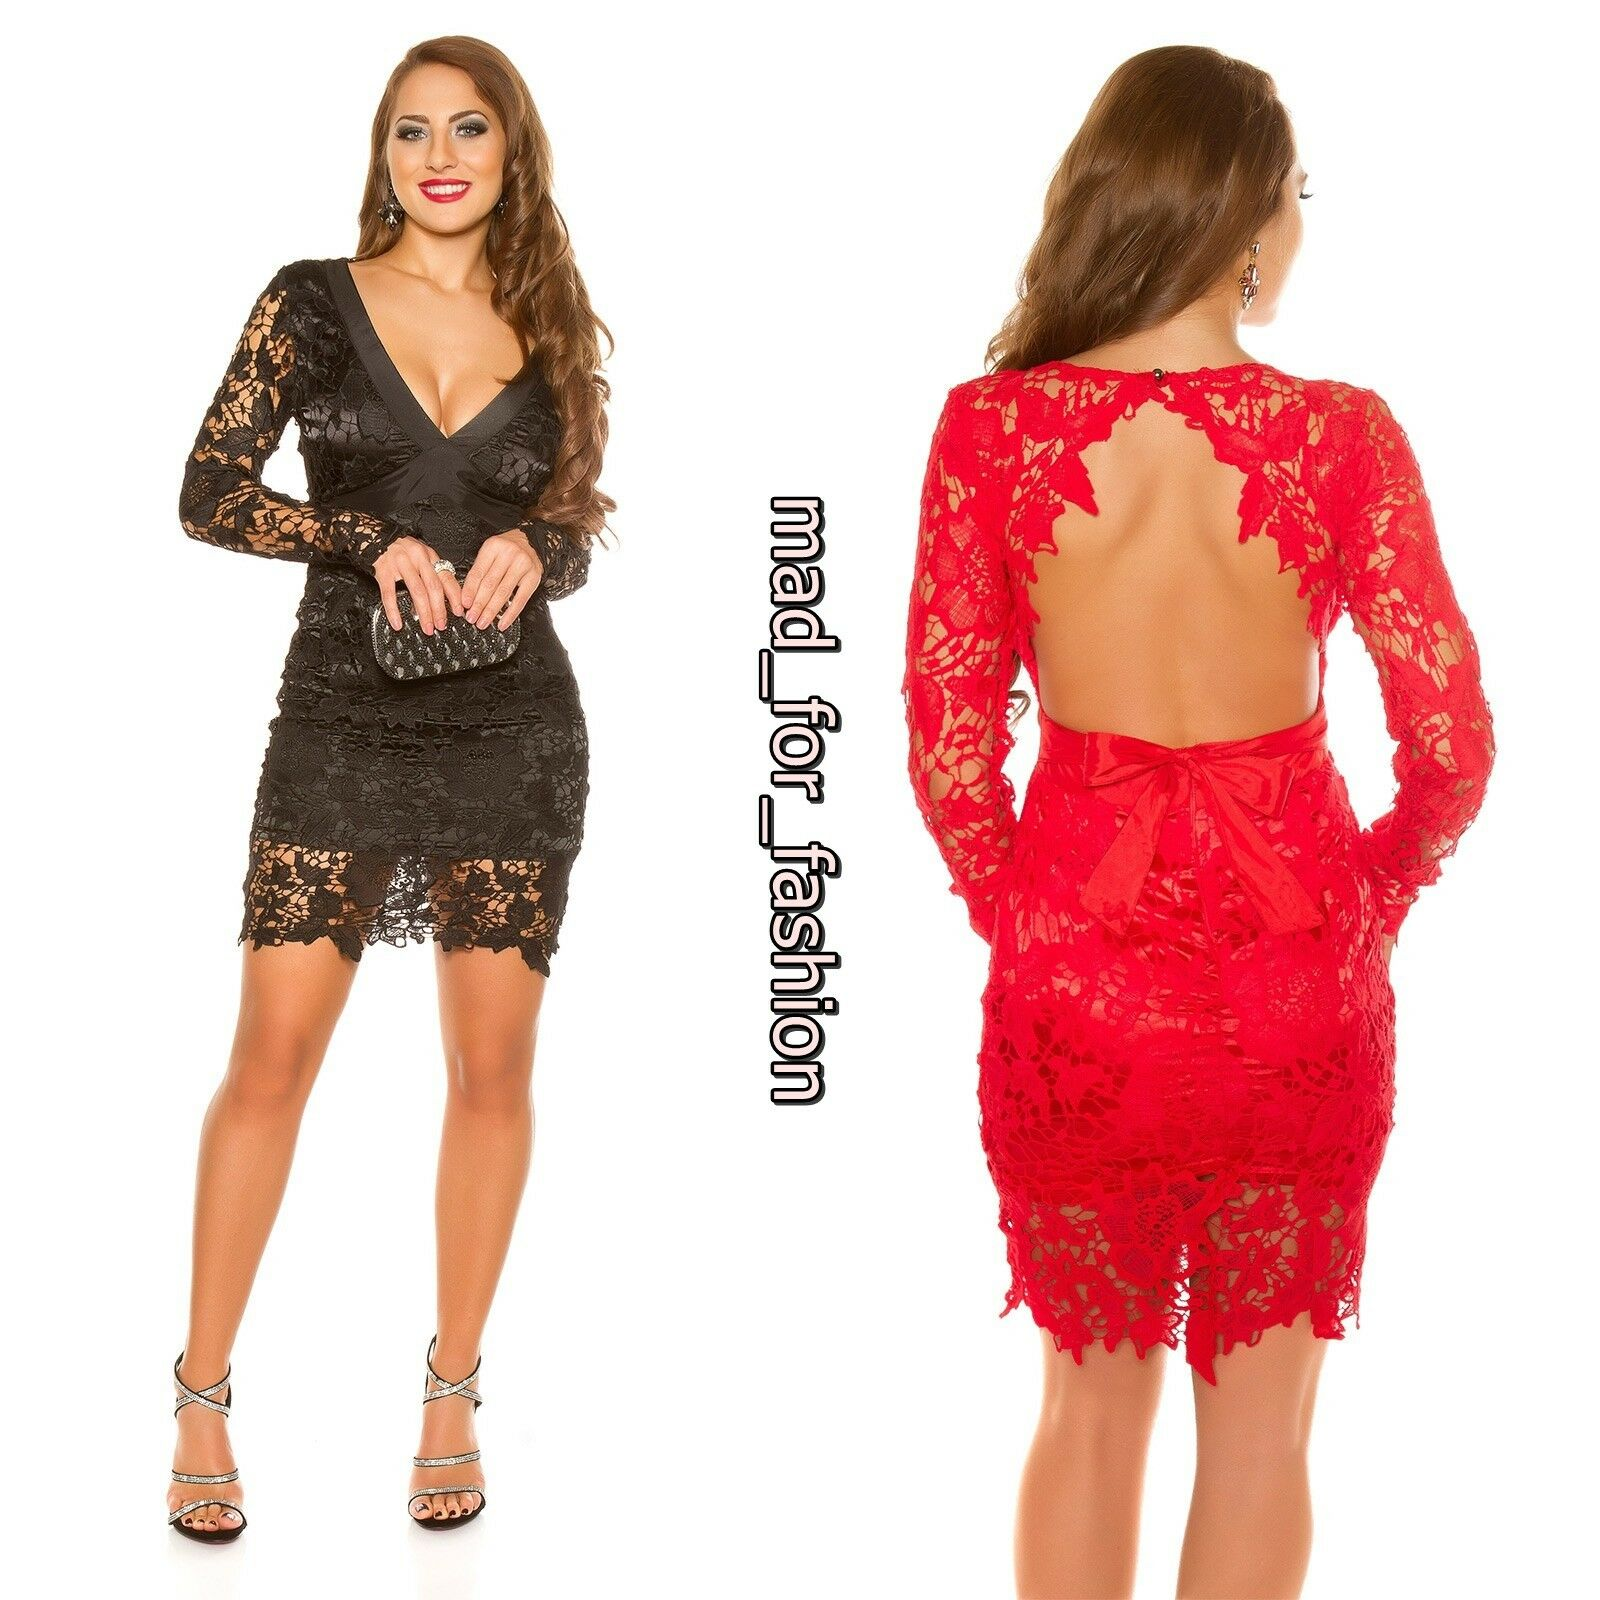 Sexy Koucla long sleeved party dress with all in crochet. S.M.L.